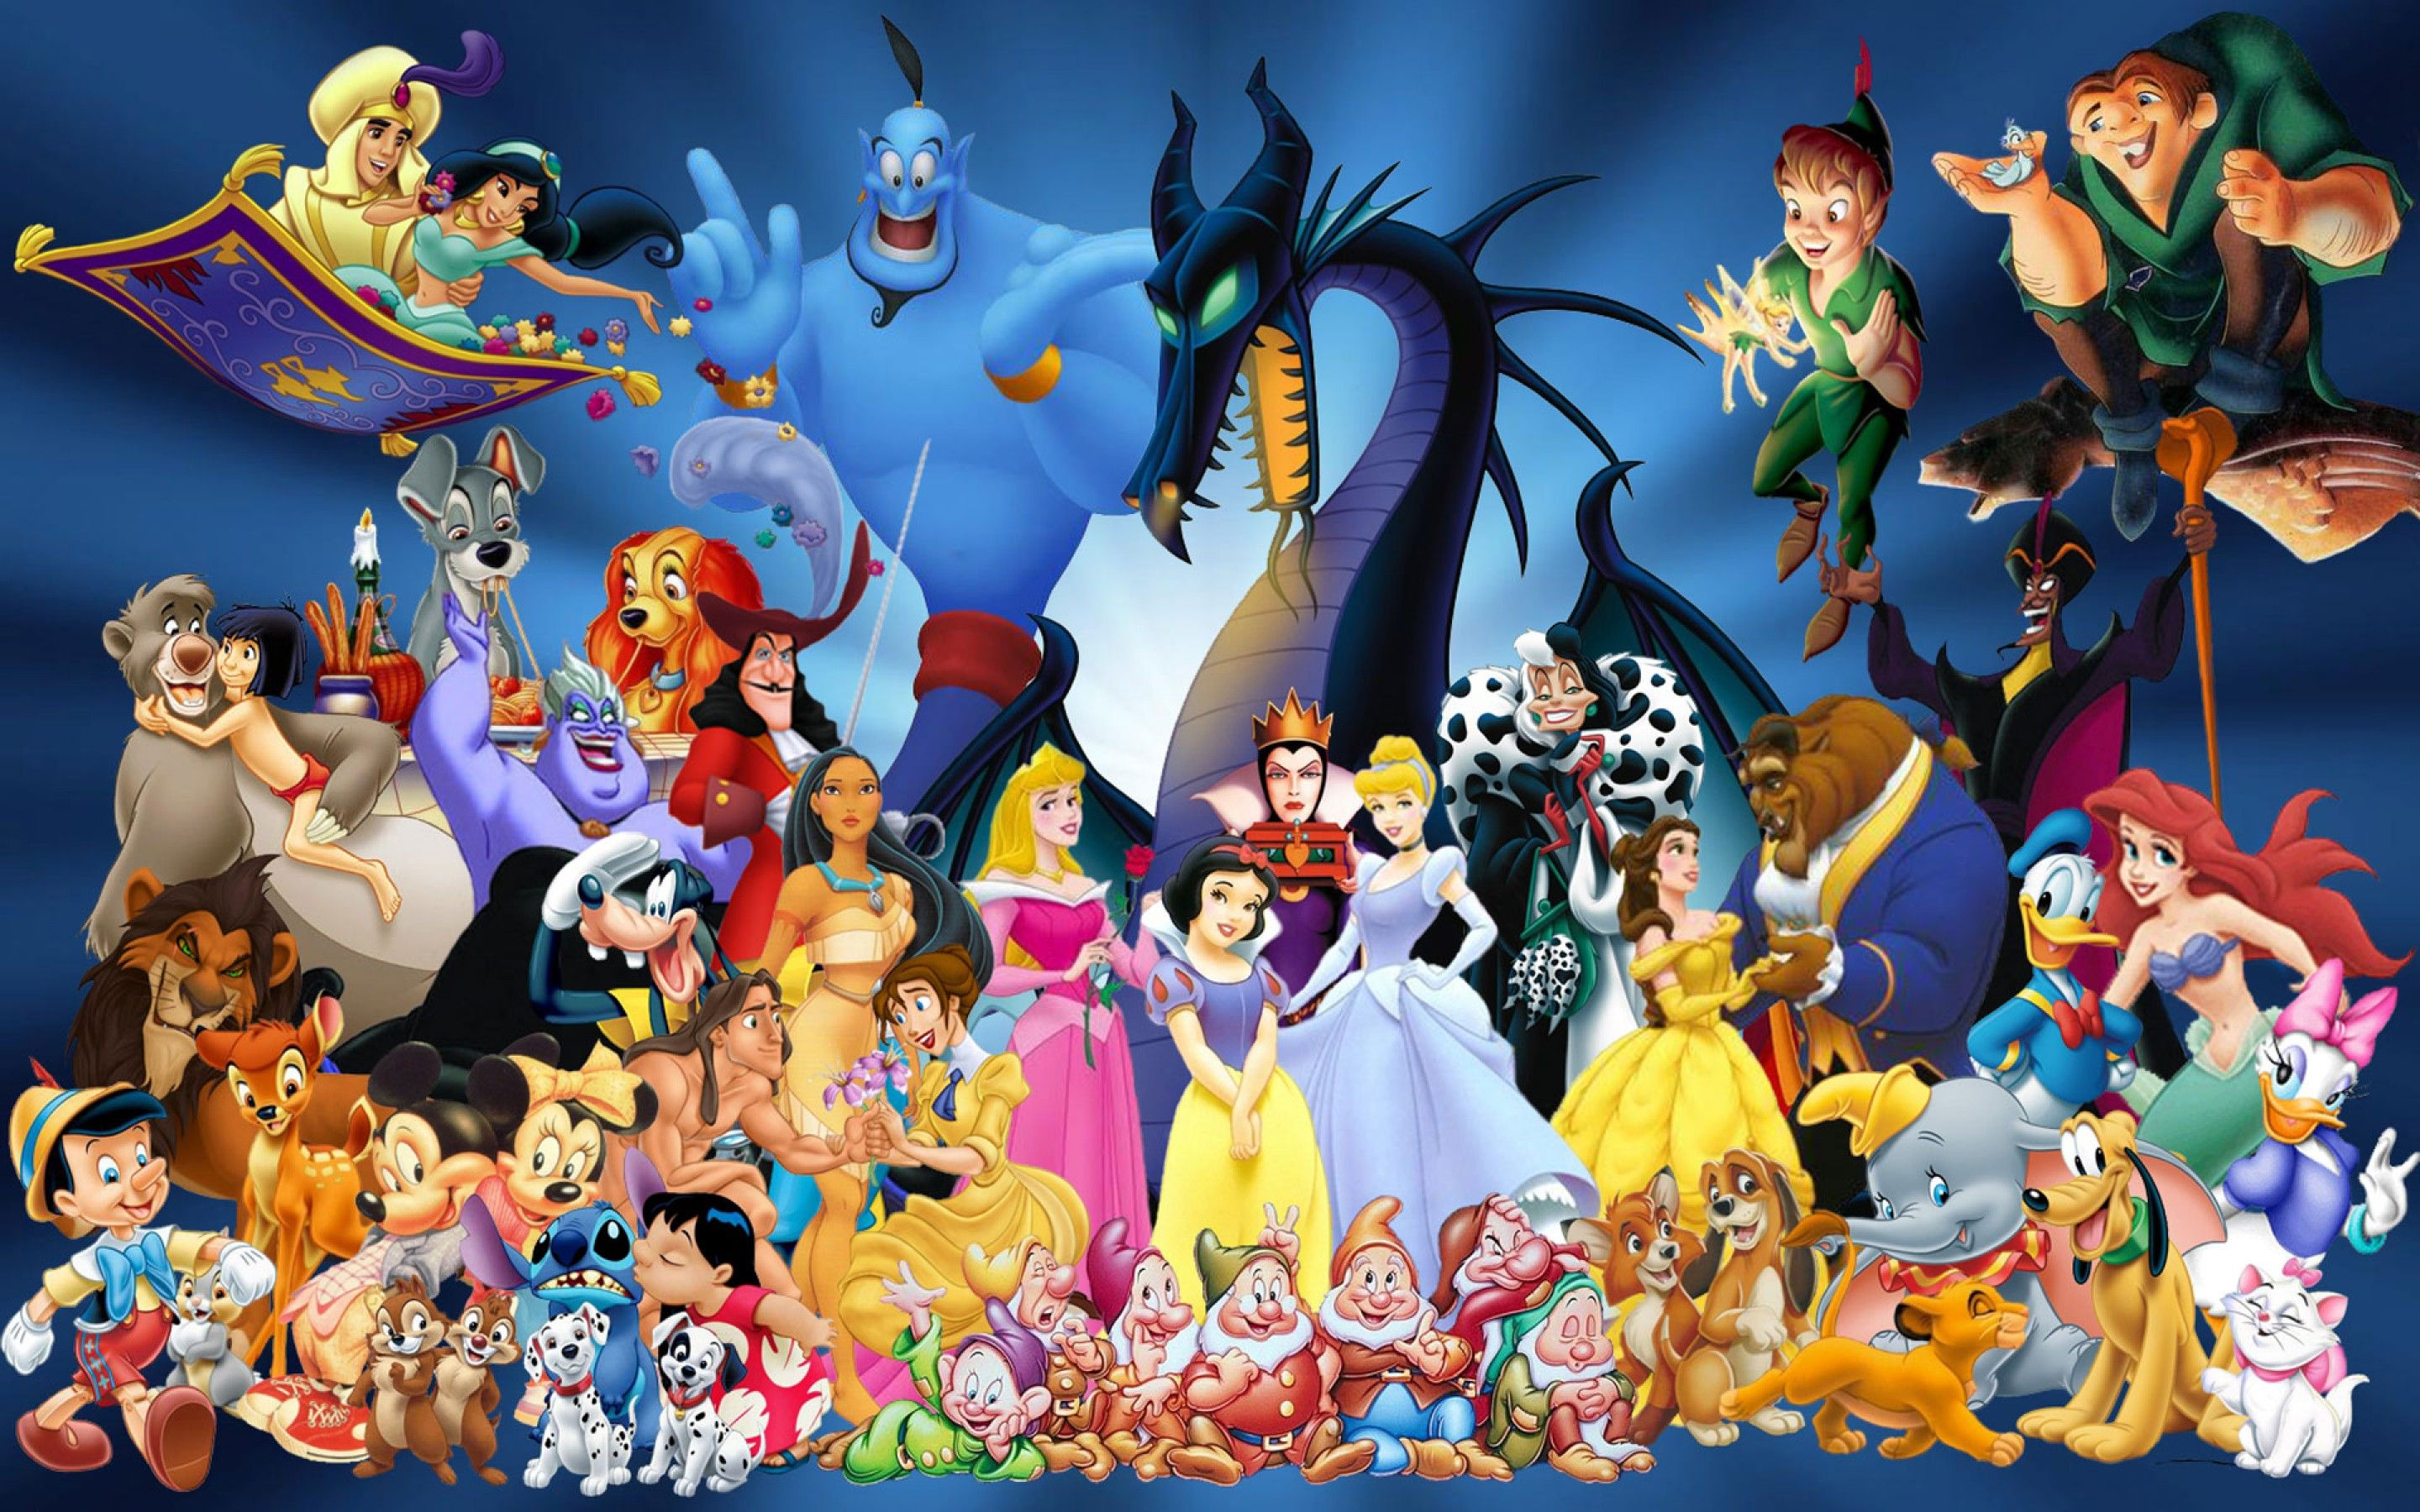 wallpaper iphone tumblr disney Pesquisa Google favs